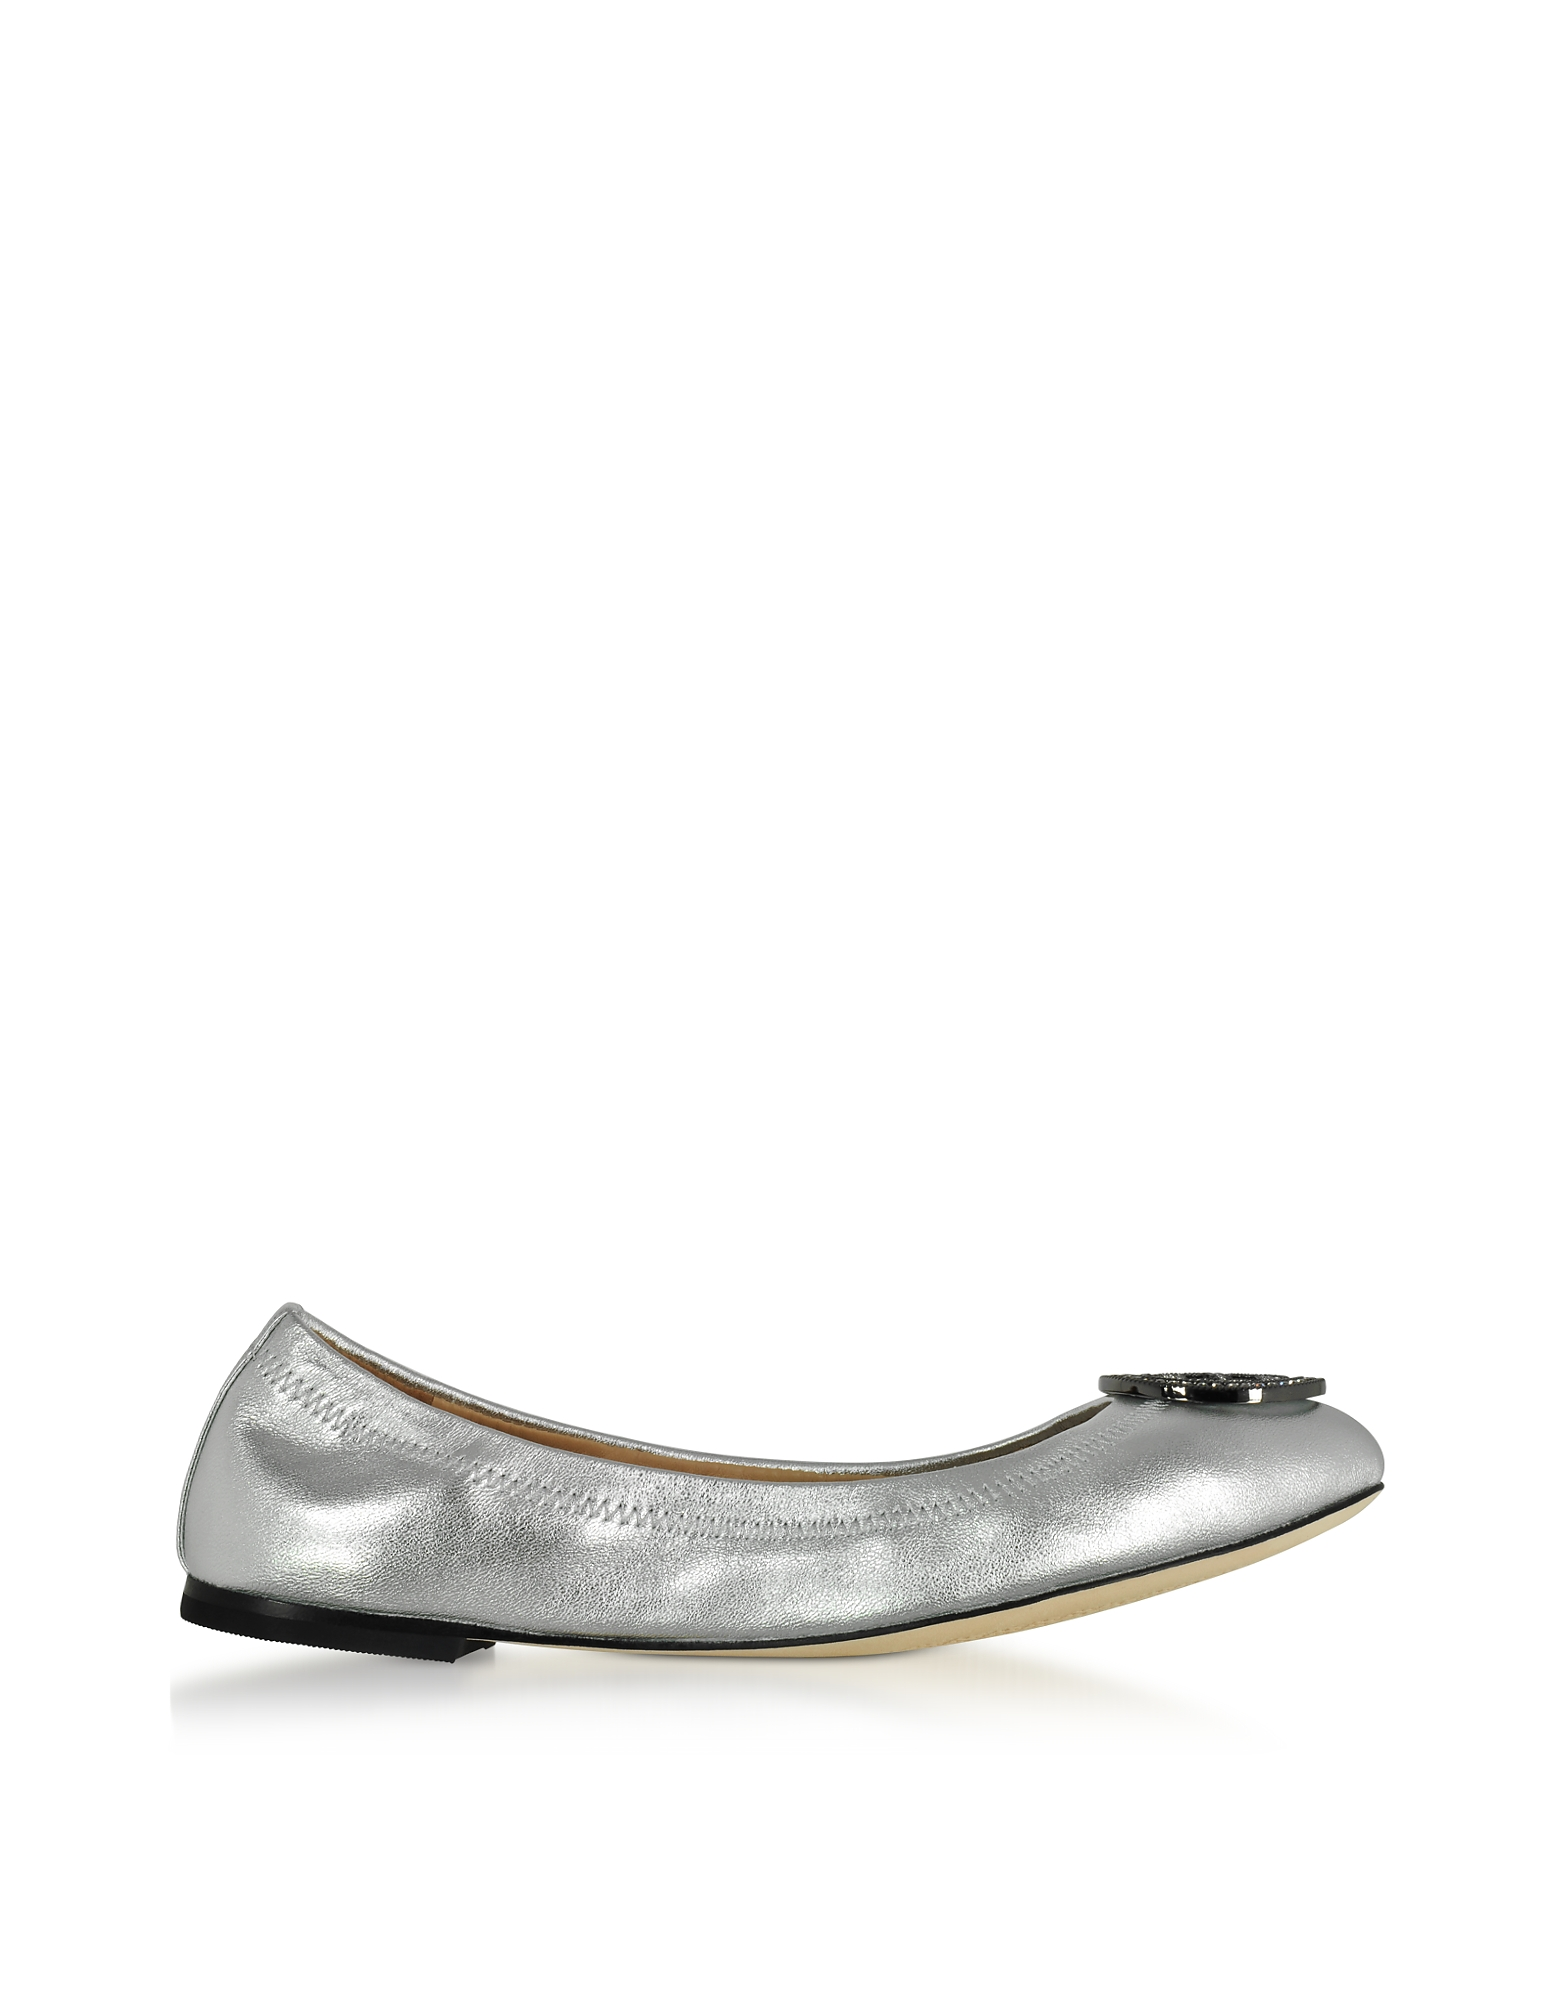 Tory Burch Shoes, Liana Silver Metallic Leather Ballet Flats